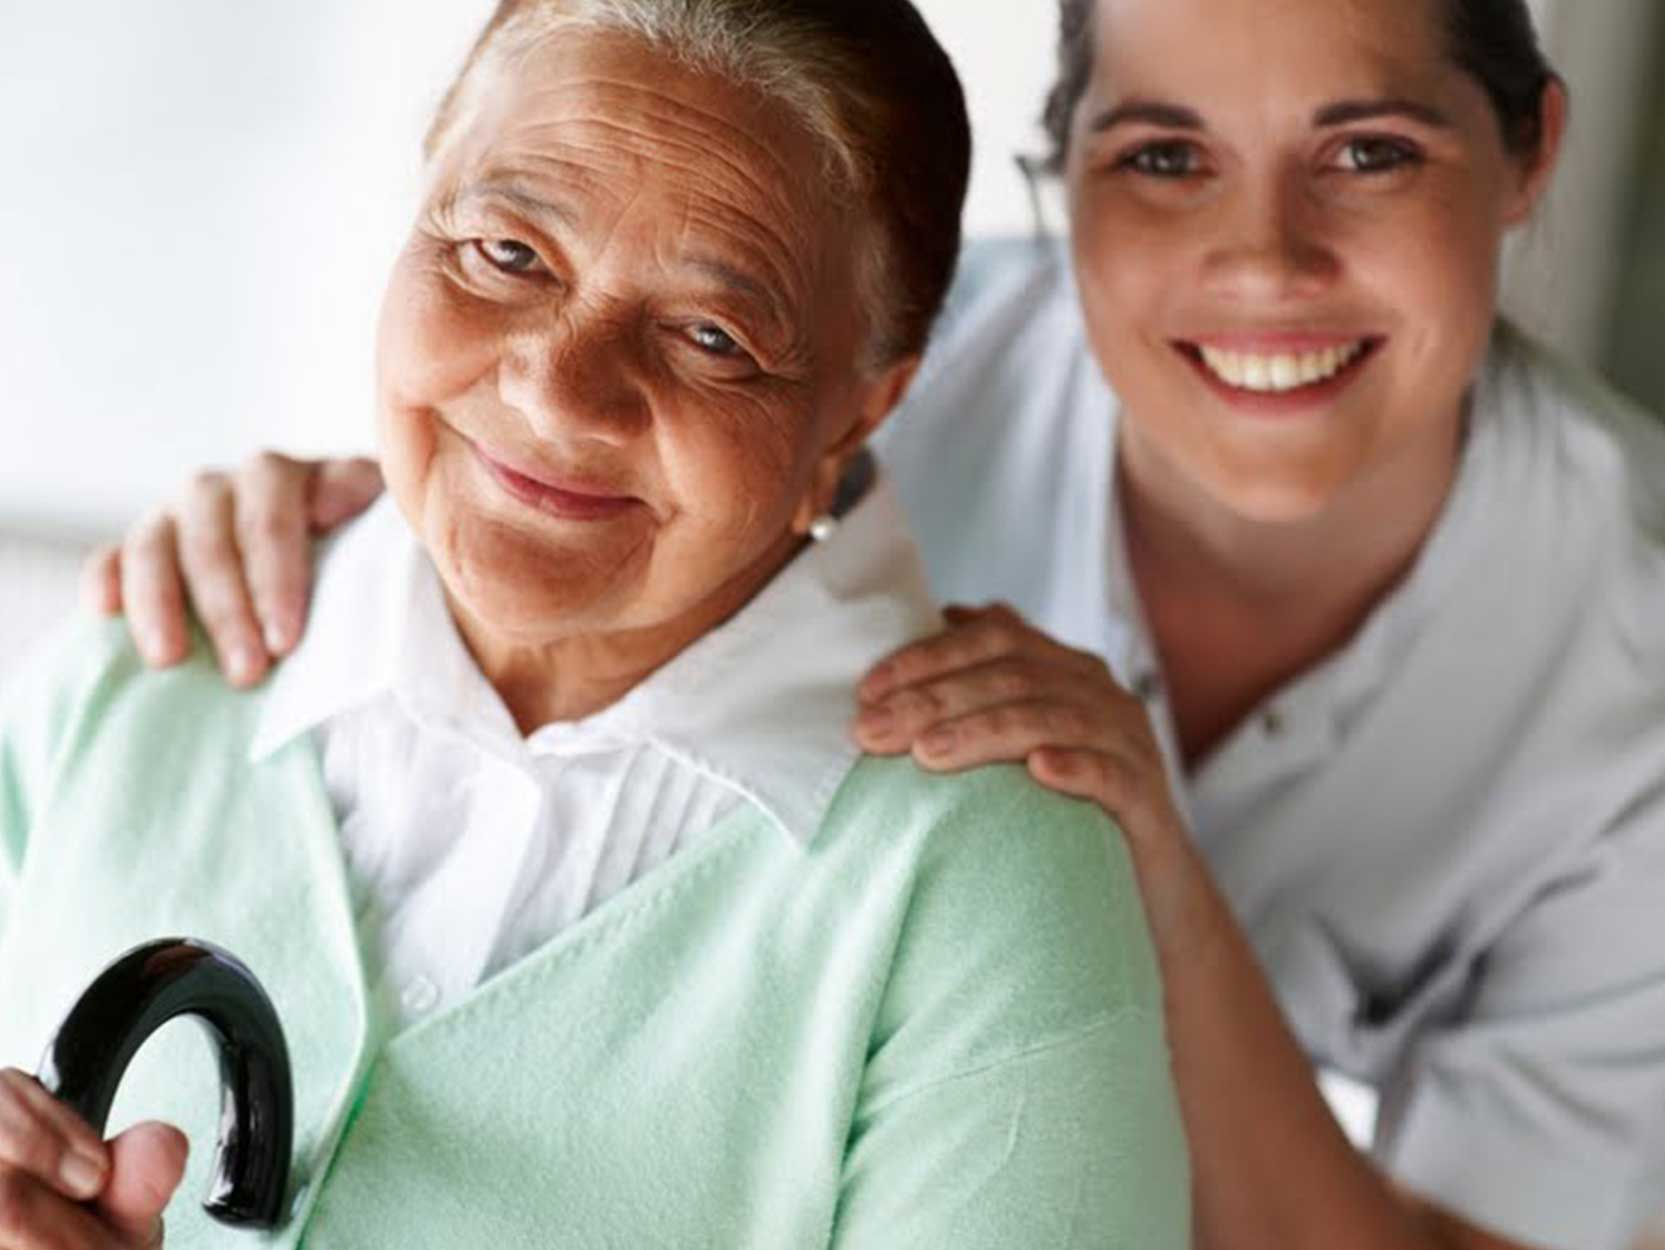 Elderly Home Care Agencies: What to look for